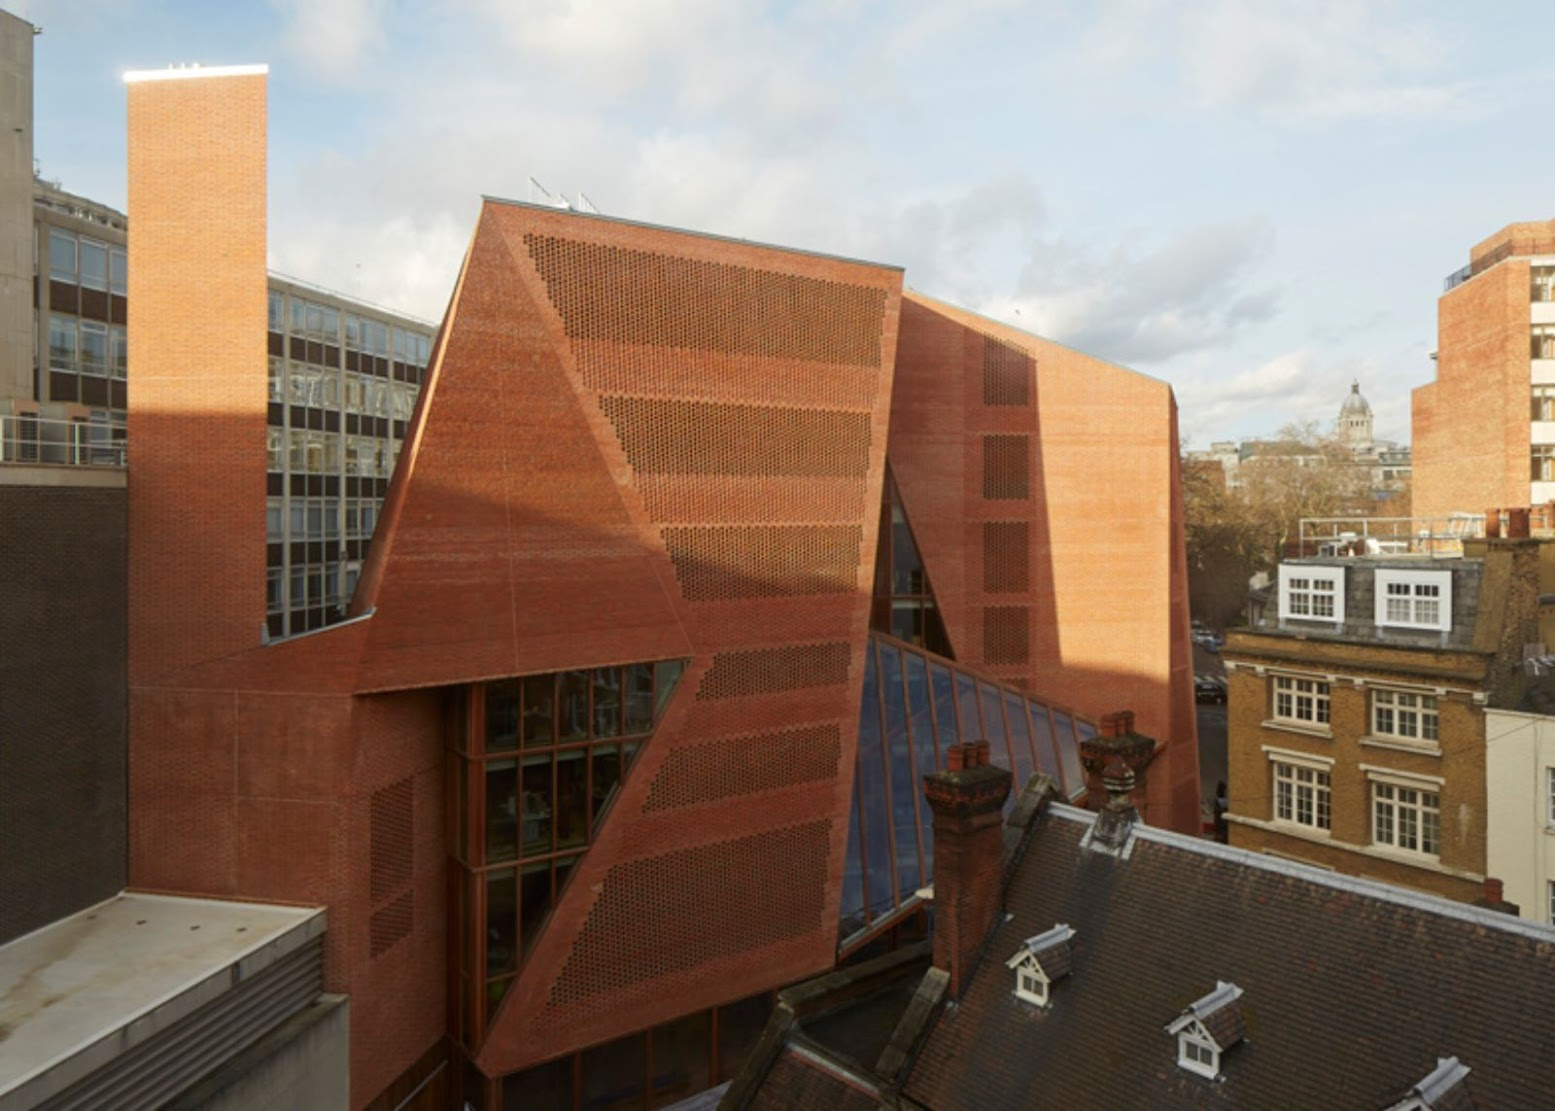 Londra, Regno Unito: [LSE SAW SWEE HOCK STUDENTS' CENTRE BY O'DONNELL + TUOMEY]